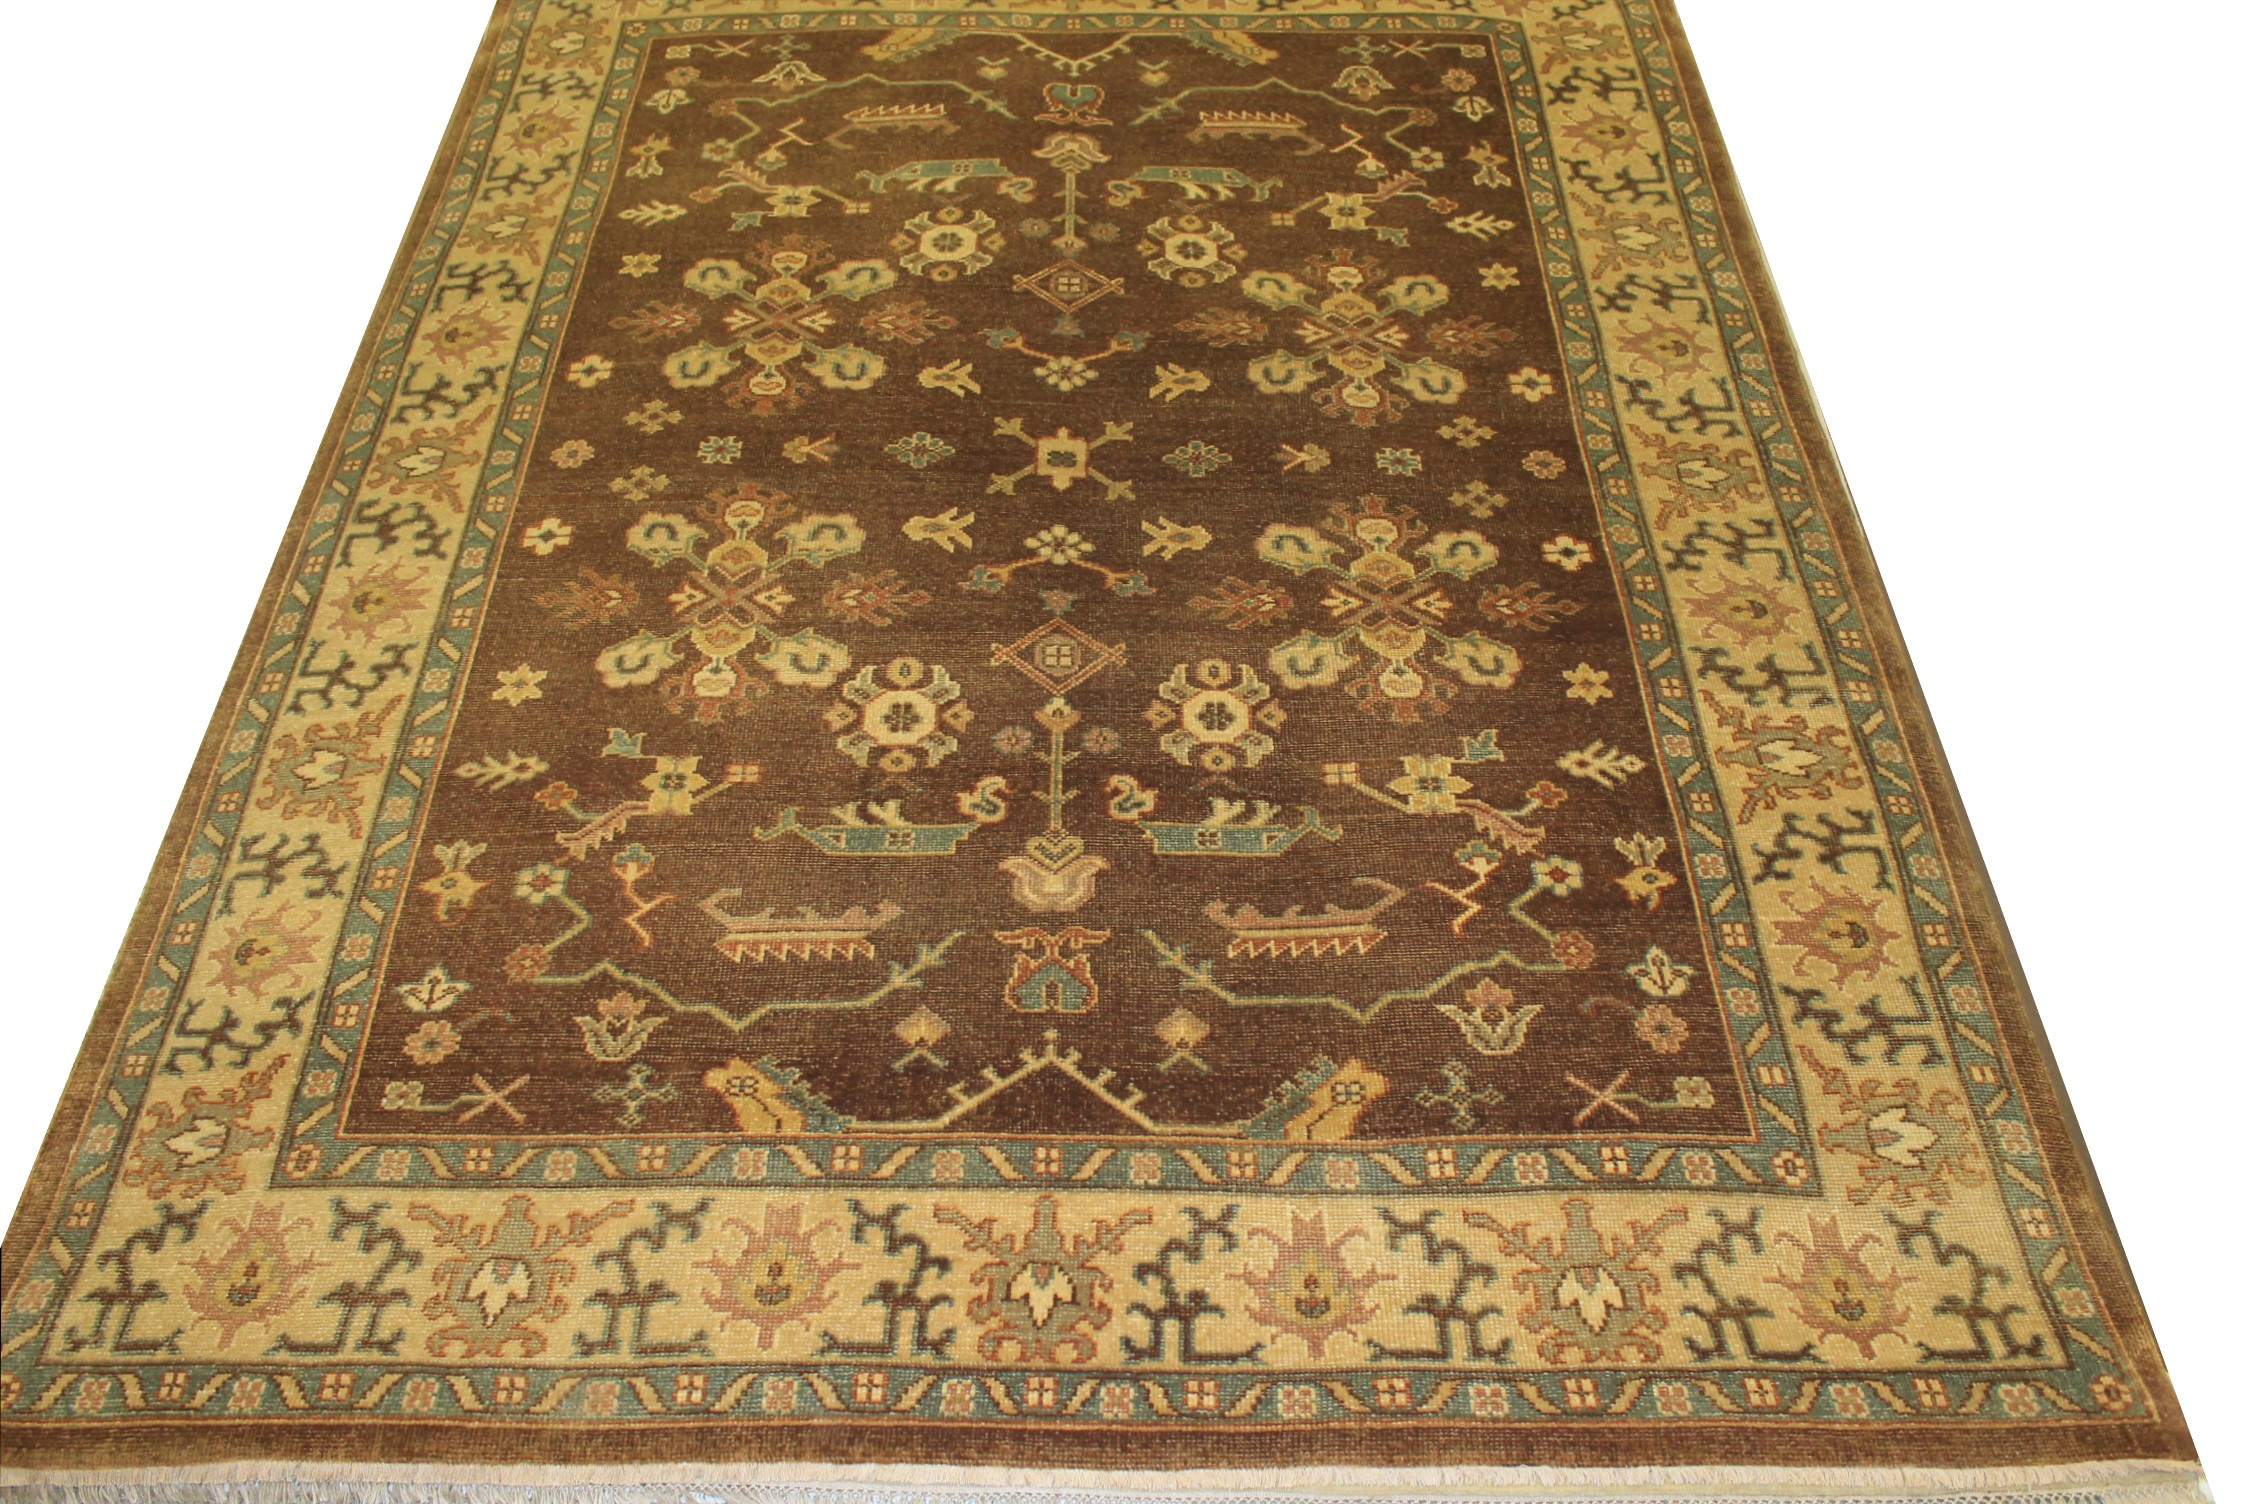 8x10 Oushak Hand Knotted Wool Area Rug - MR15284